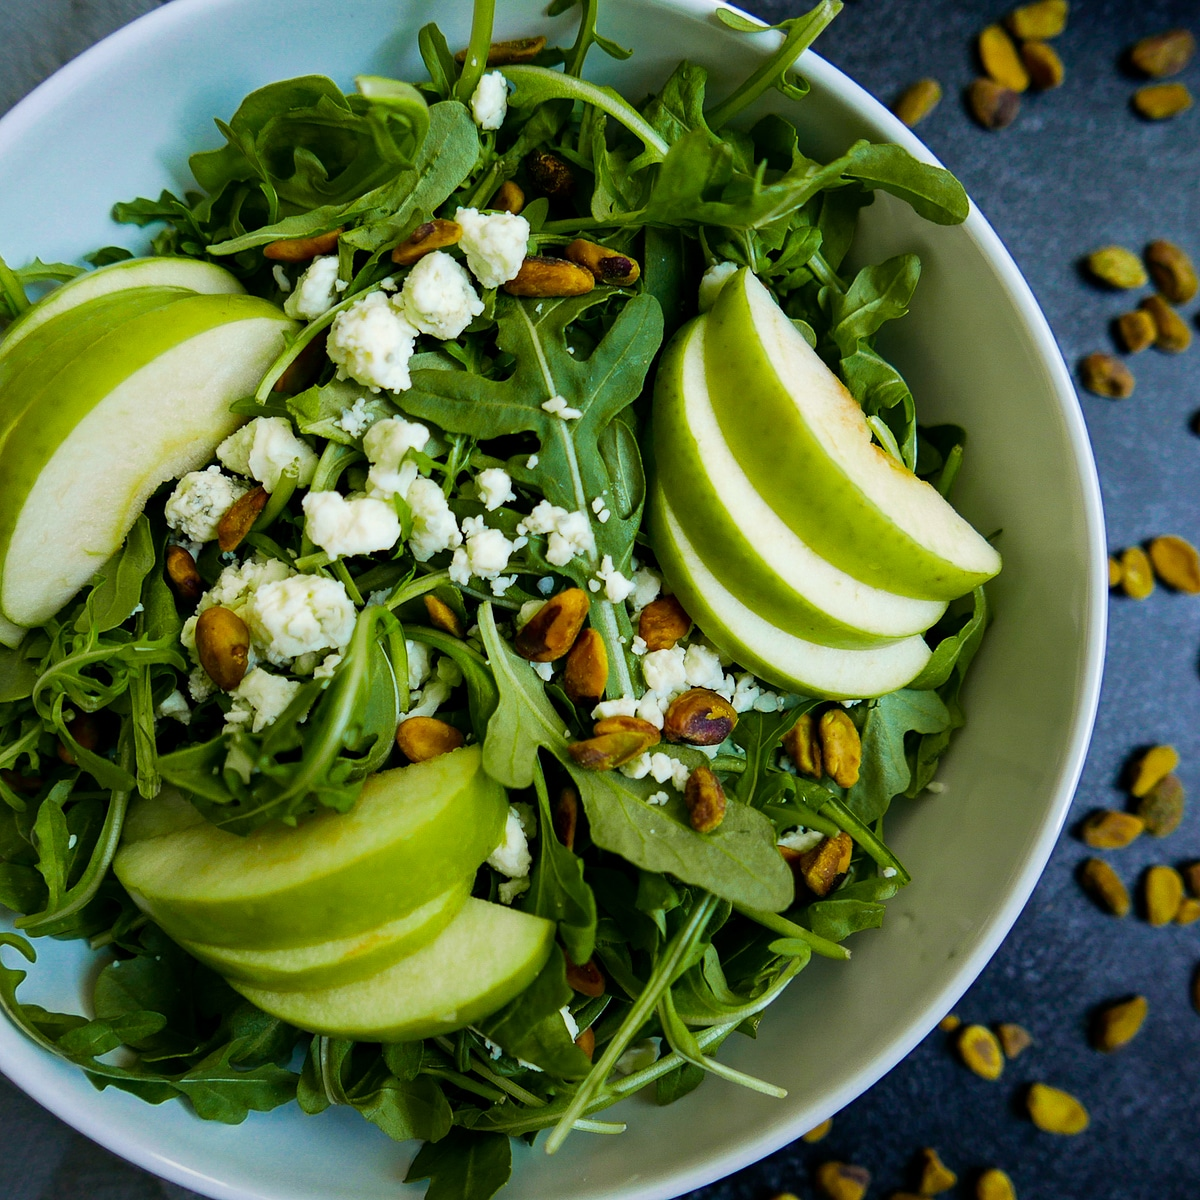 harvest apple salad with pistachios and blue cheese in large white bowl